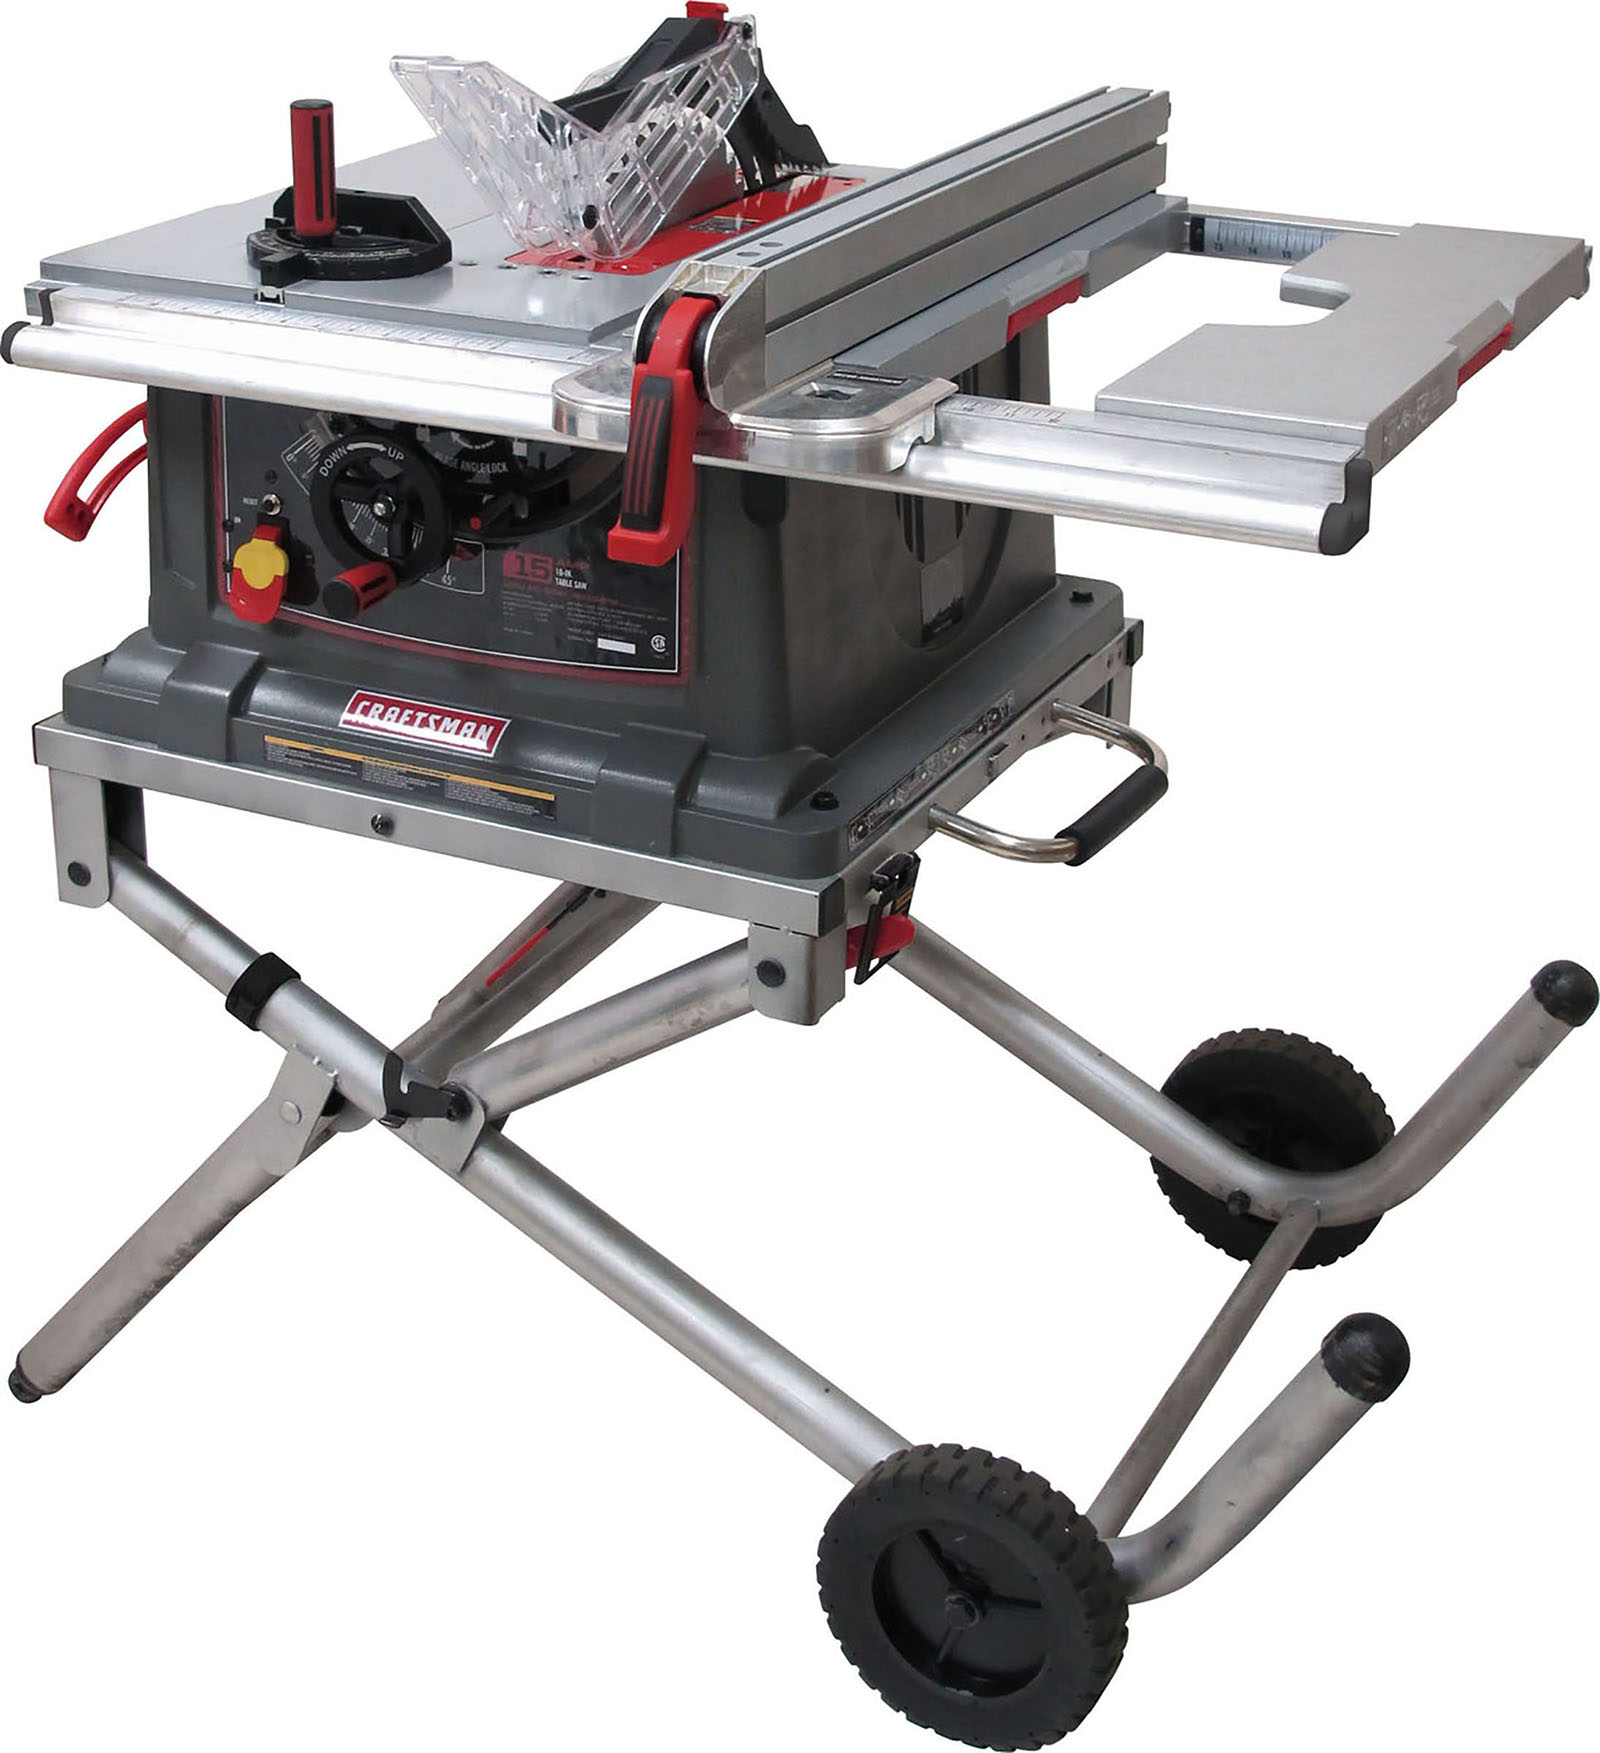 hight resolution of craftsman 10 portable table saw wiring diagram for craftsman table saw 137 248830